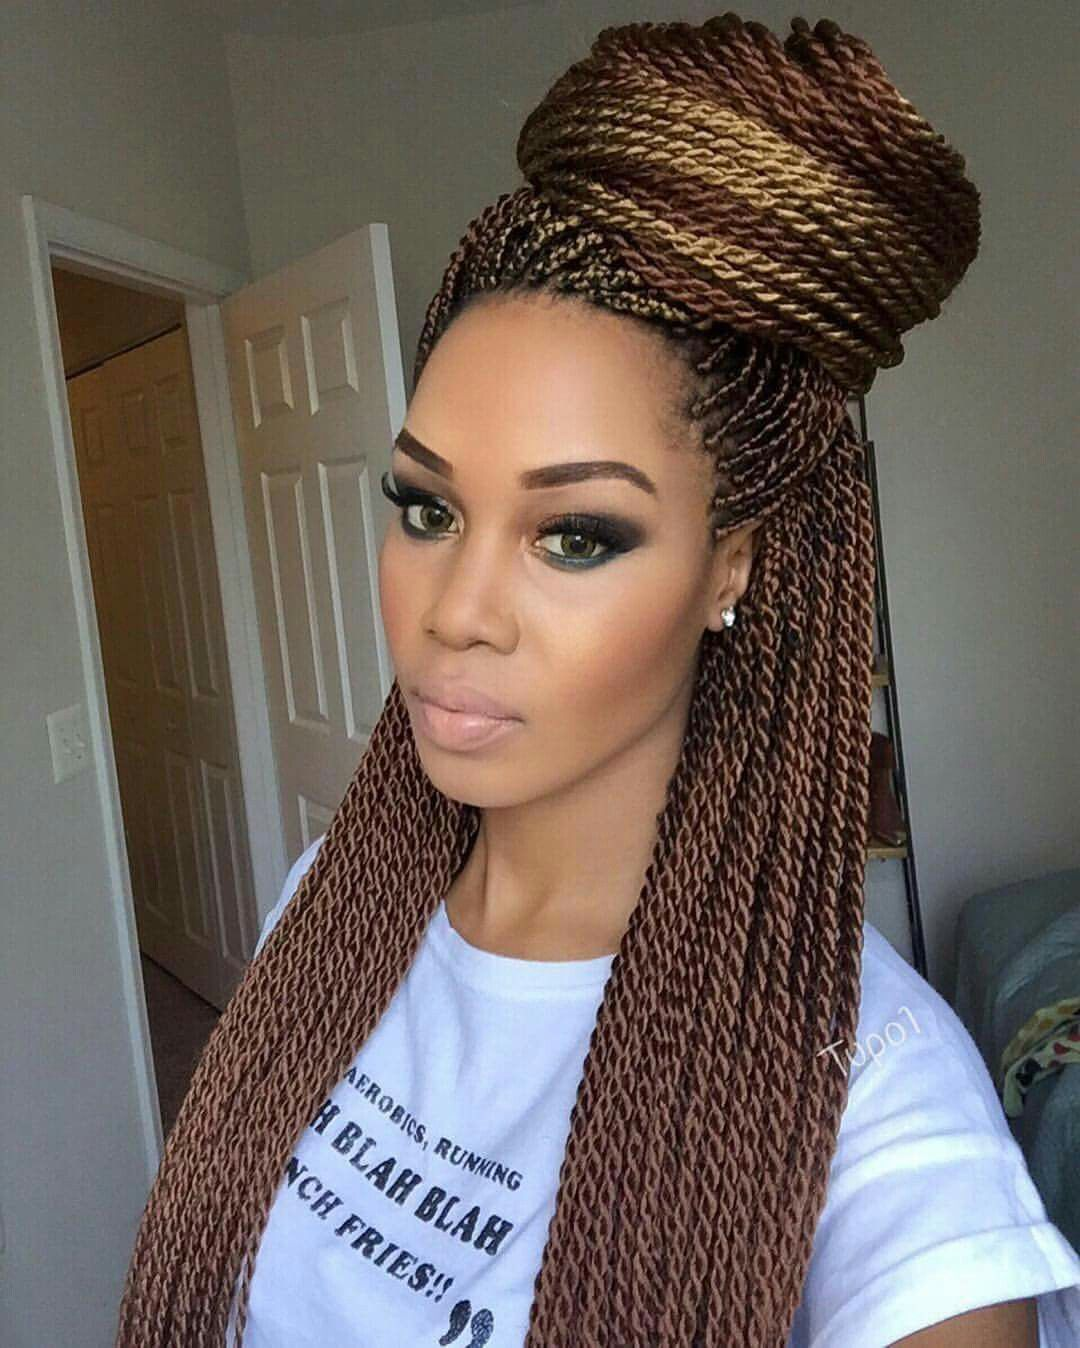 78 of the Best Senegalese Twist Hairstyle Ideas 78 of the Best Senegalese Twist Hairstyle Ideas new photo